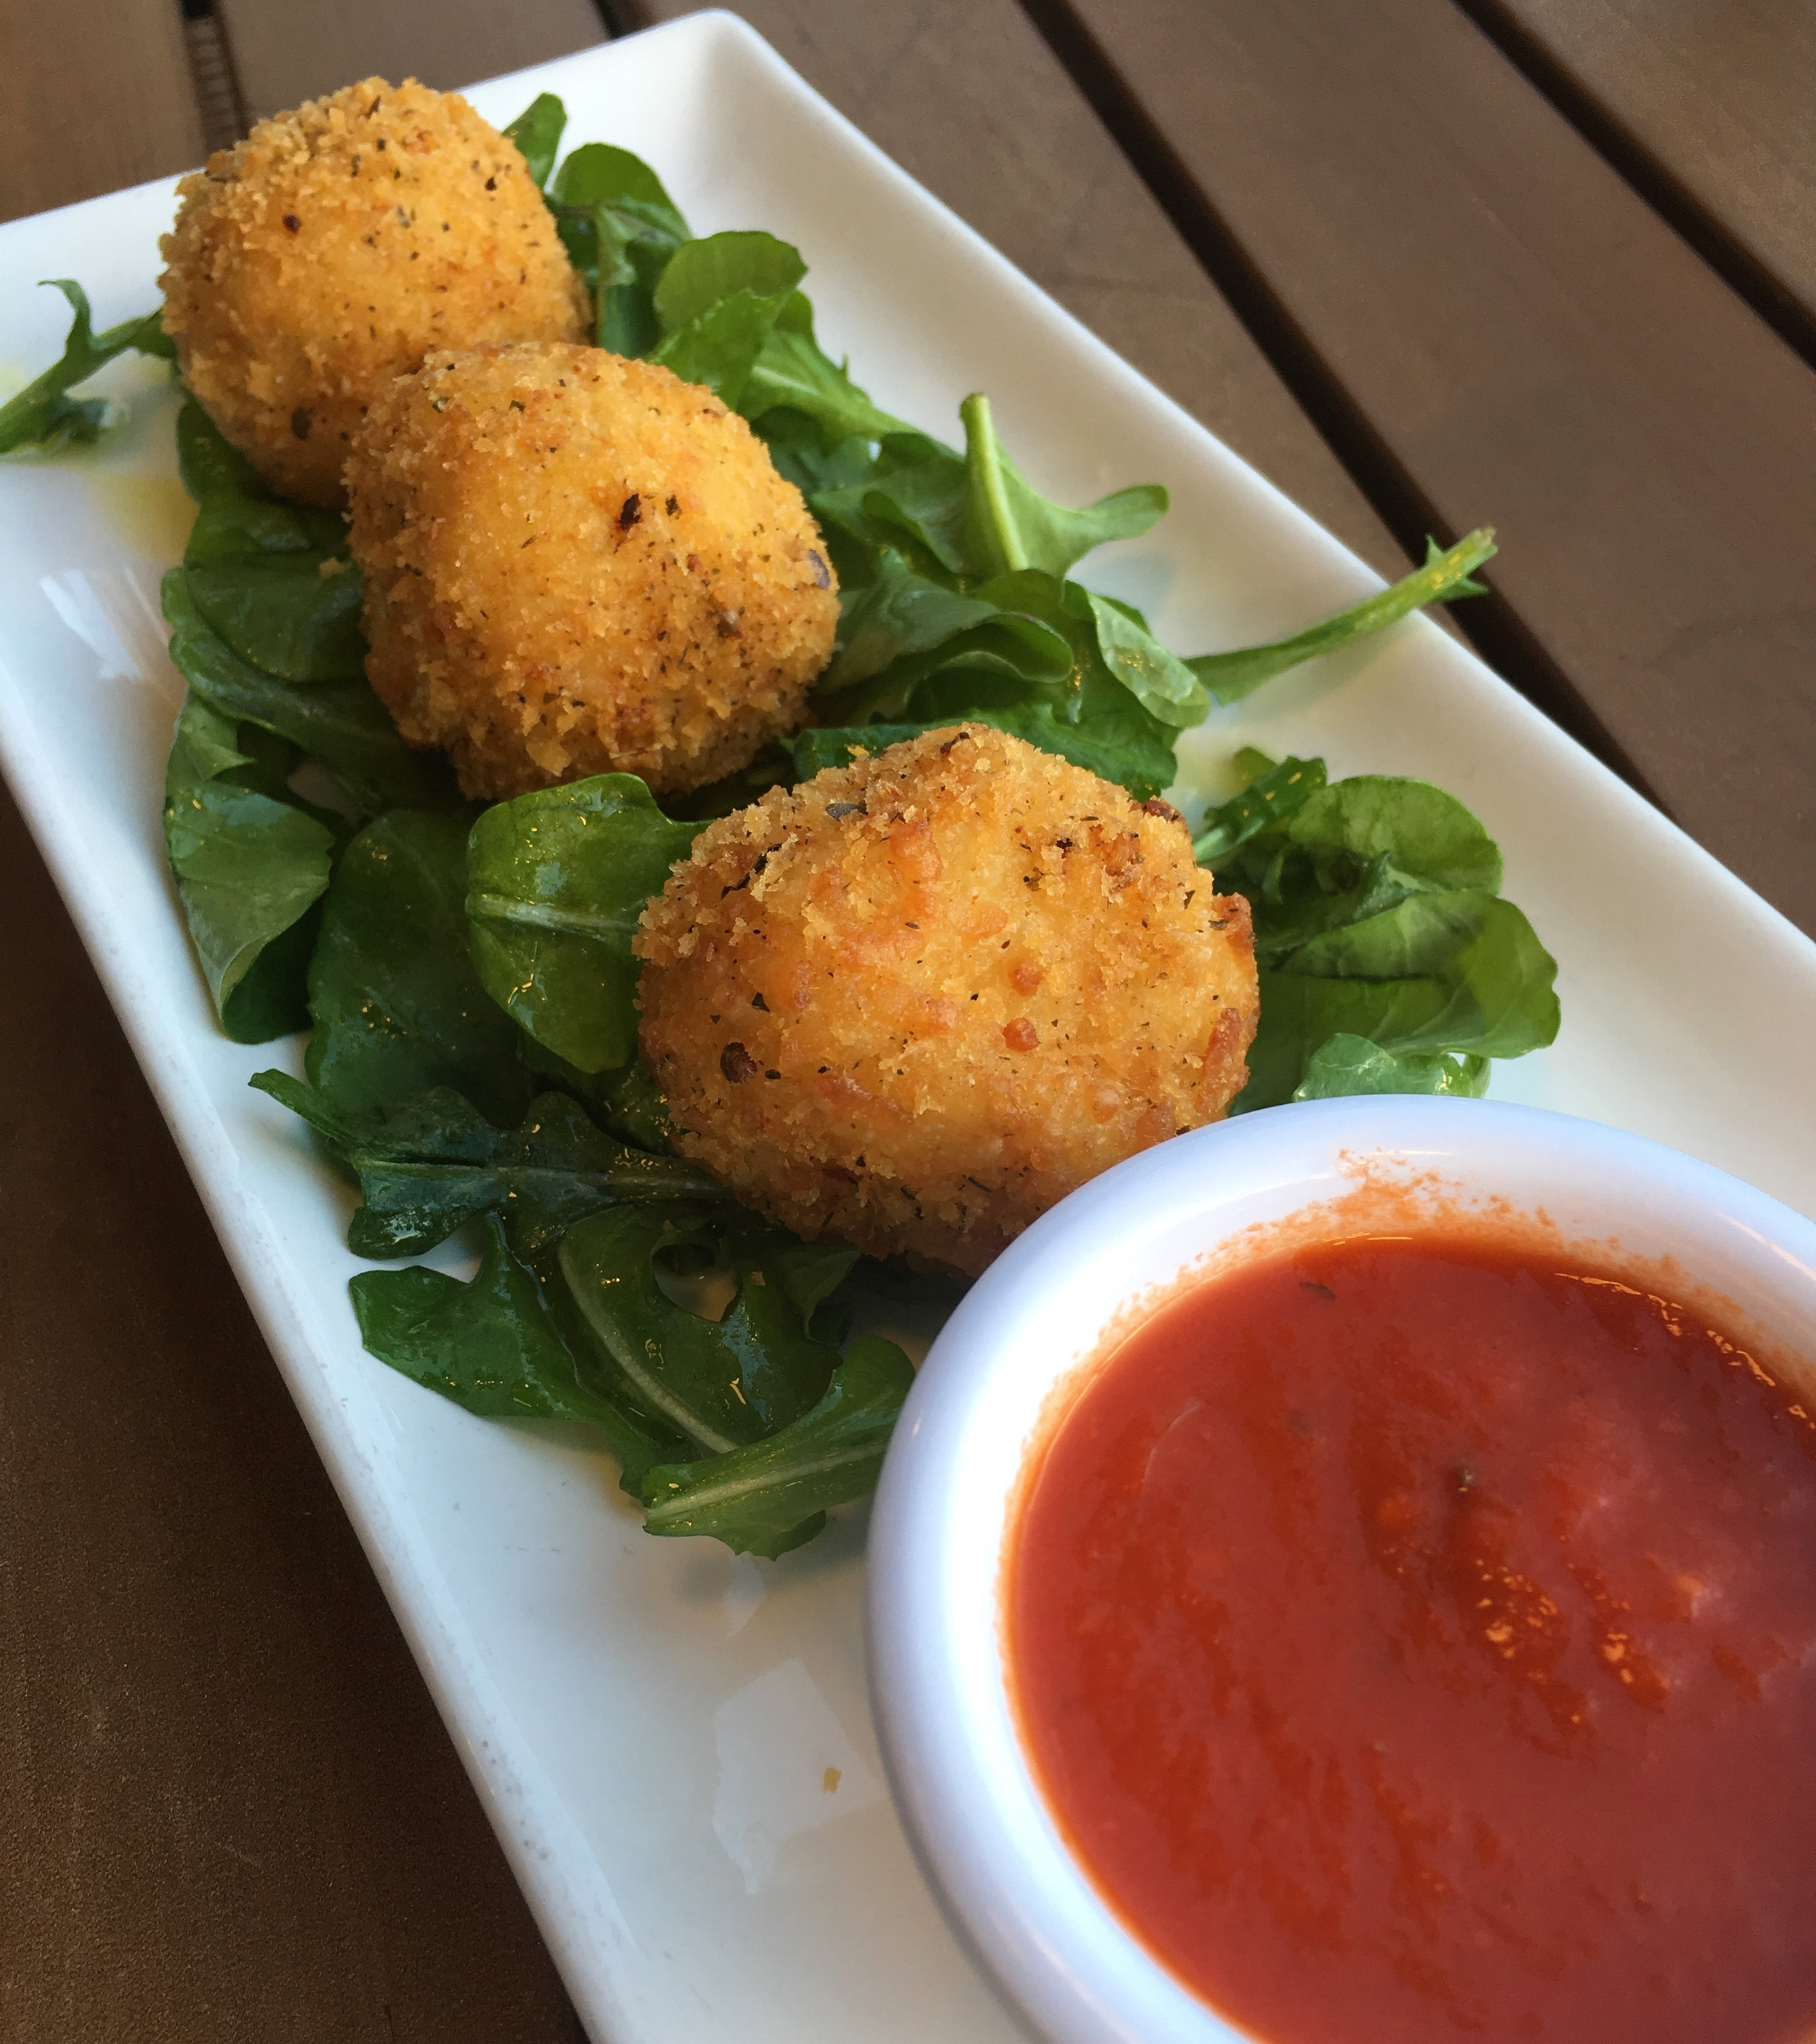 Dinner Appetizer One: Arancini with marinara sauce.